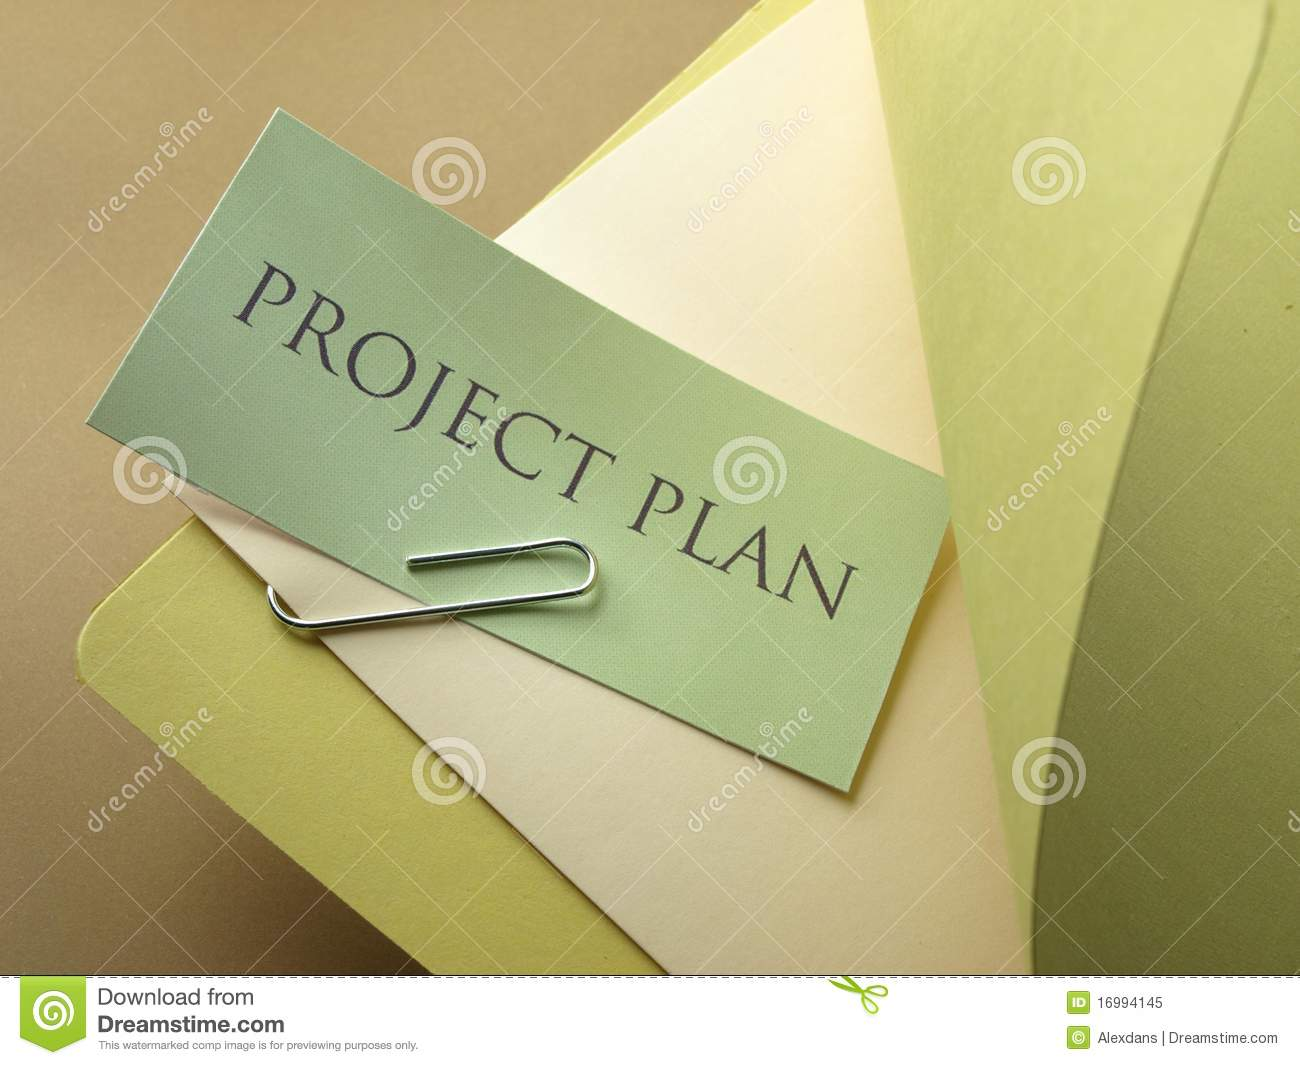 Project plan royalty free stock photo image 16994145 for Project plan free